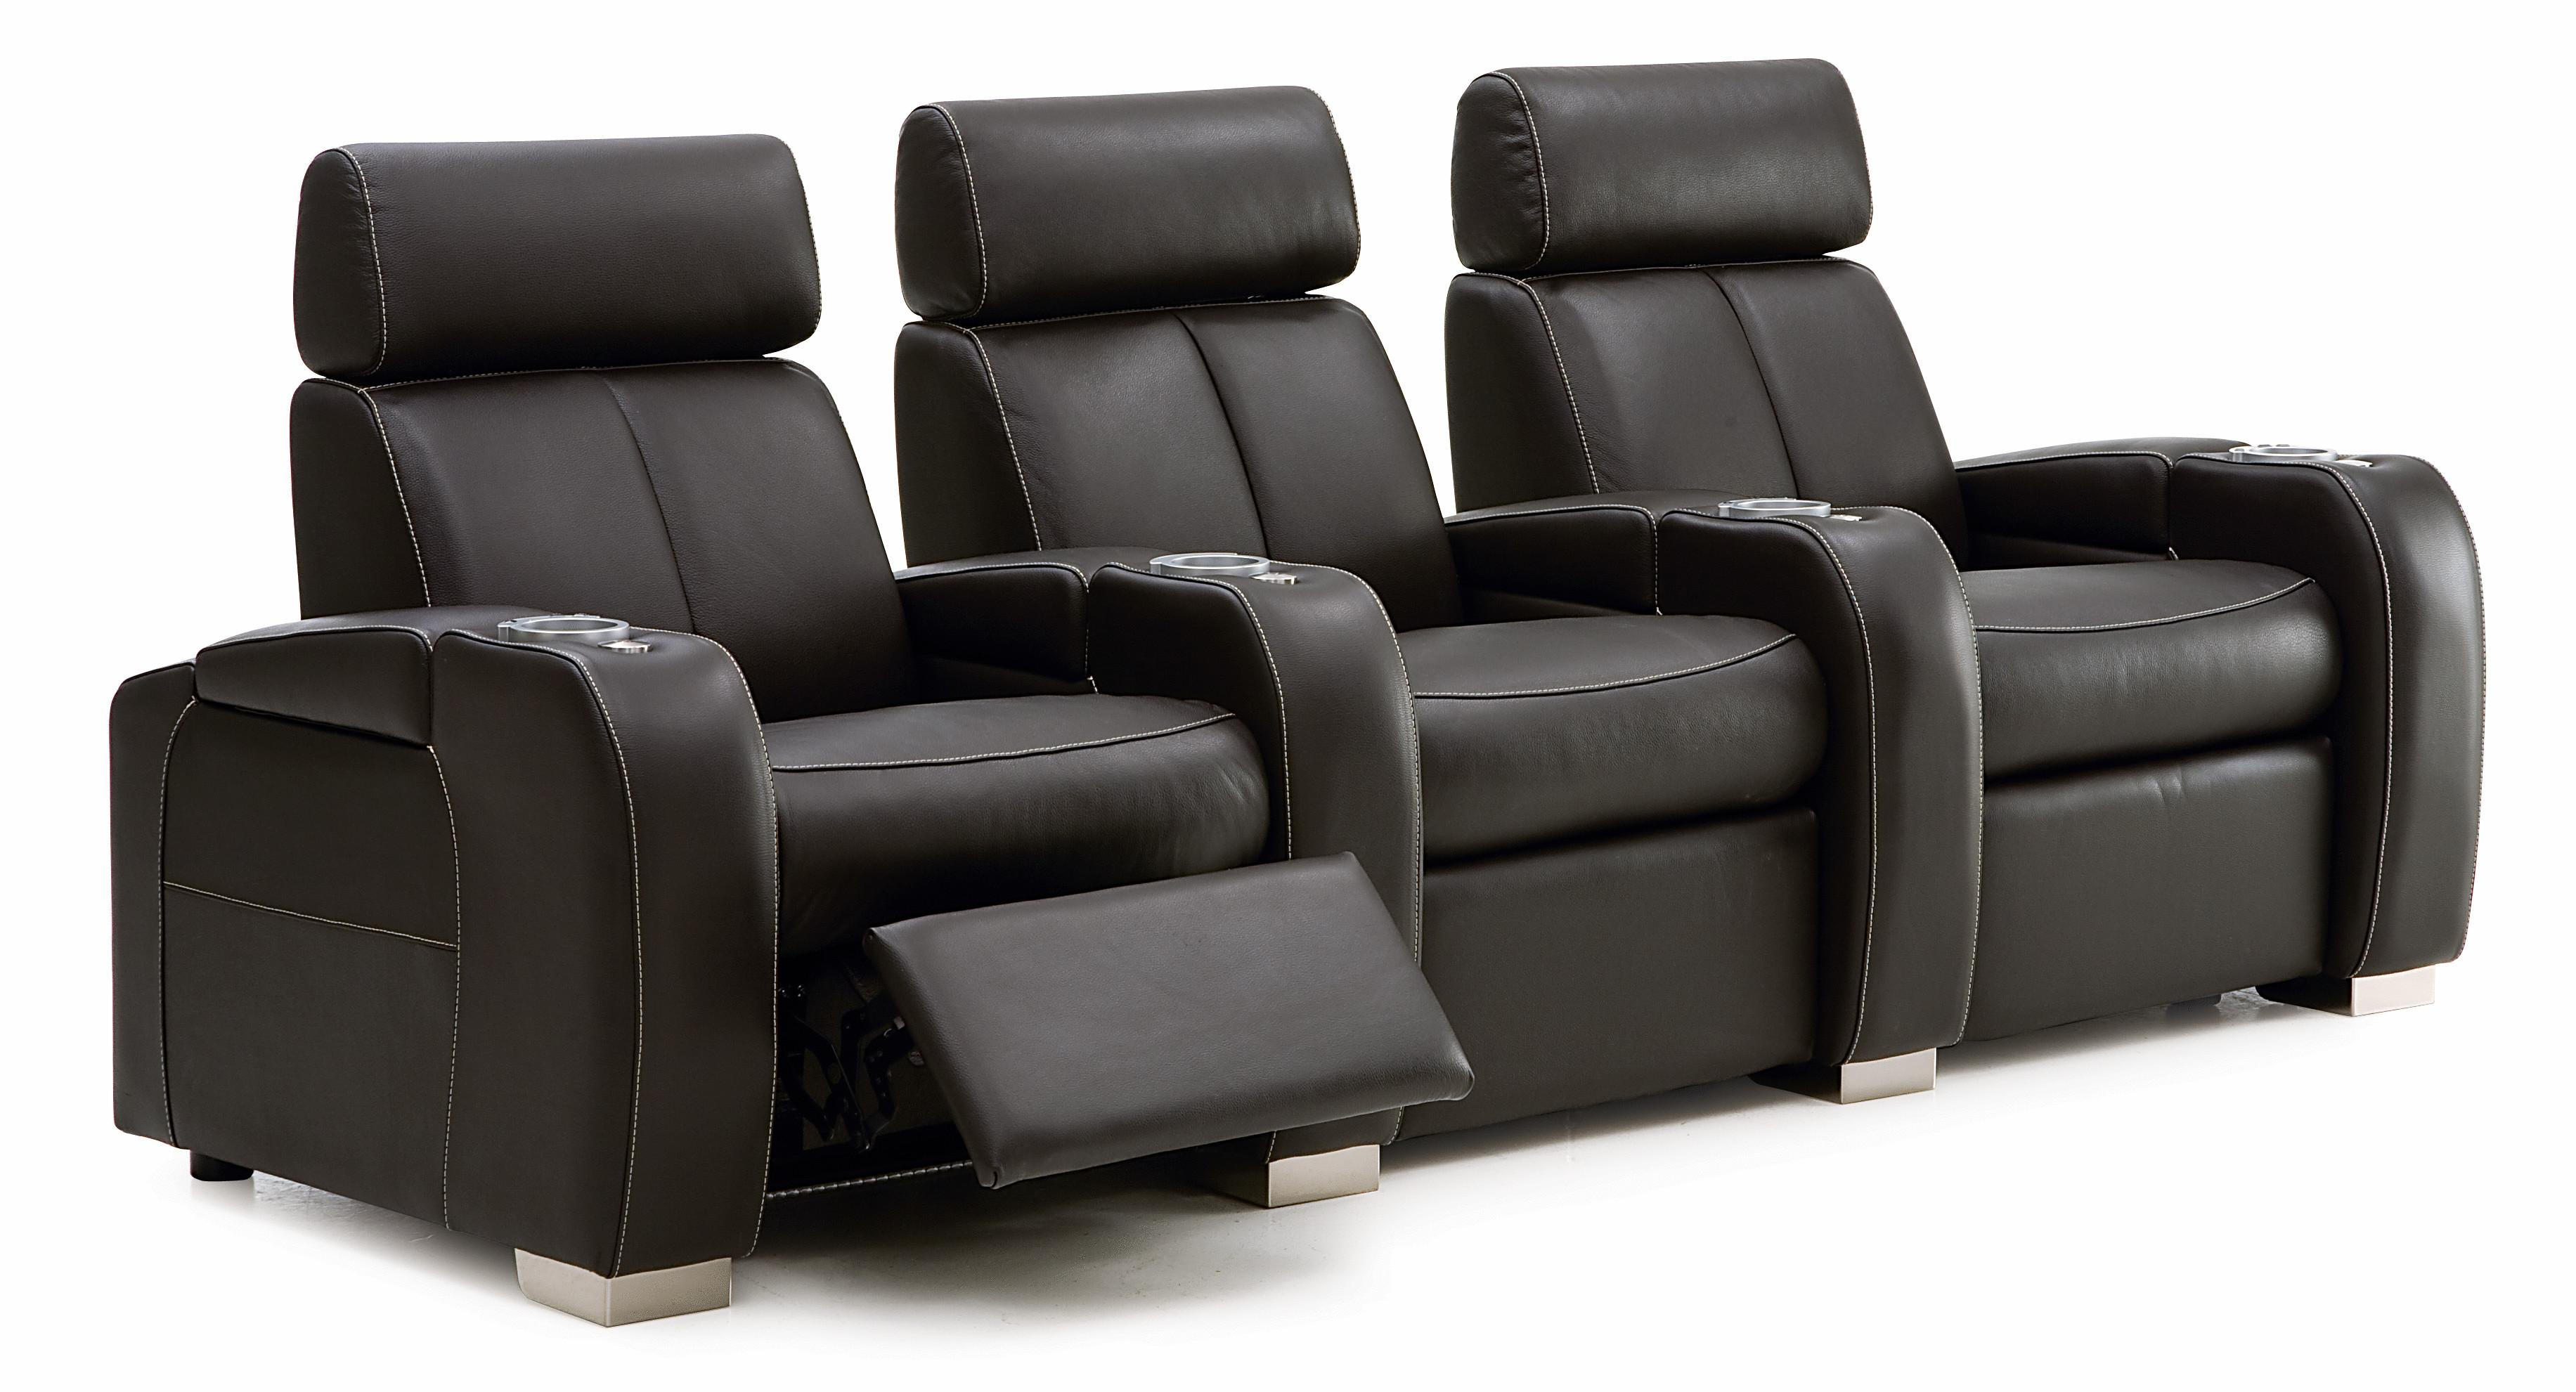 recliner s tepperman theater seating home theatre pacifico recliners k